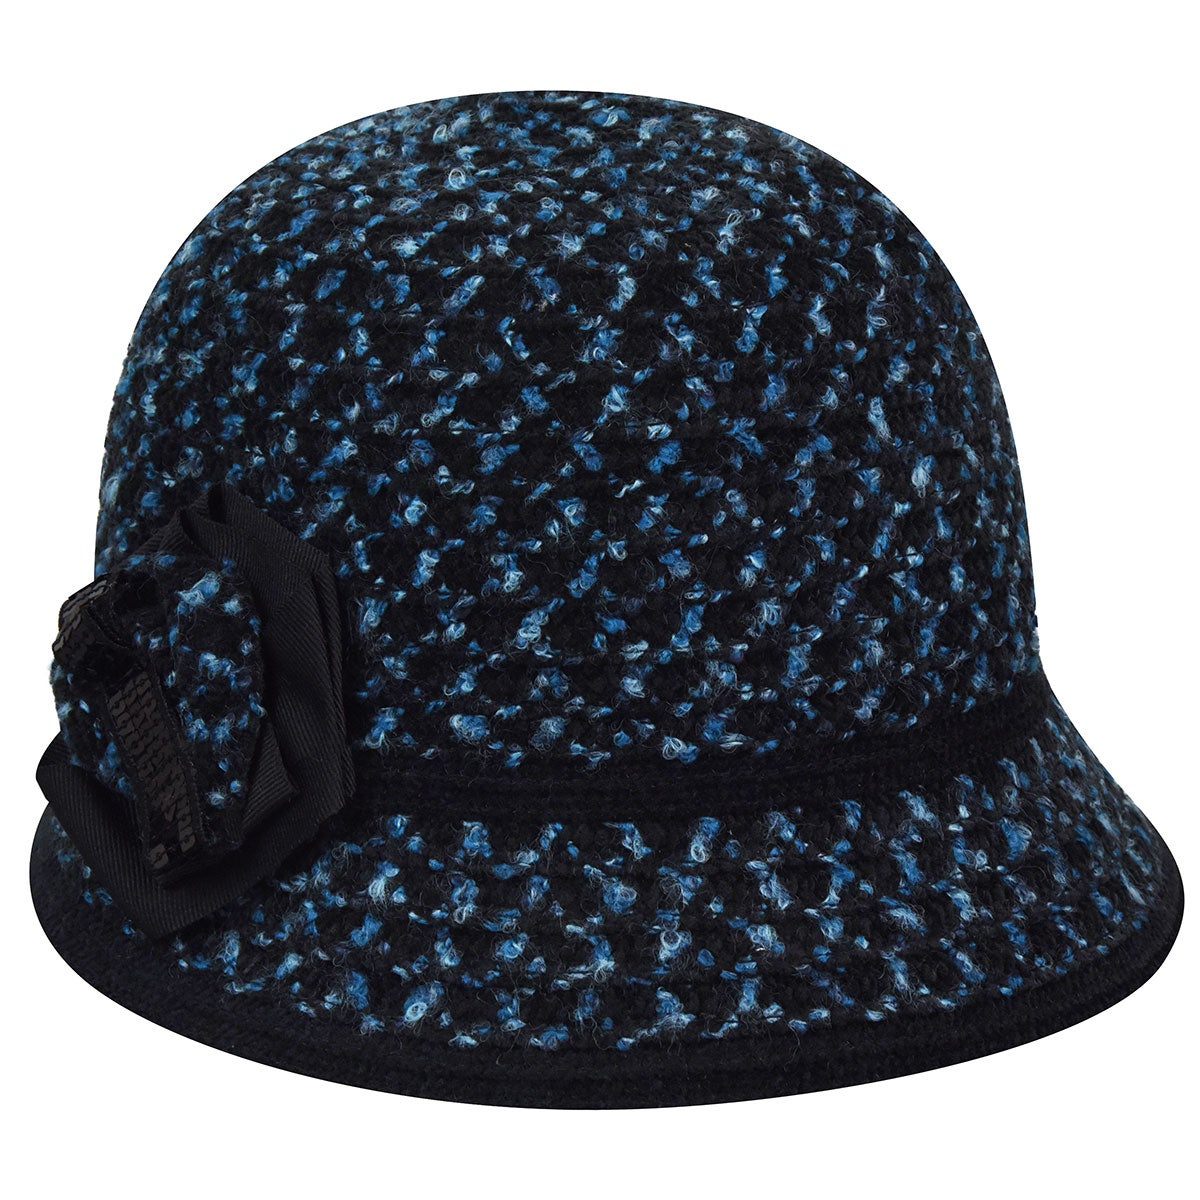 Betmar Willow Cloche in Teal